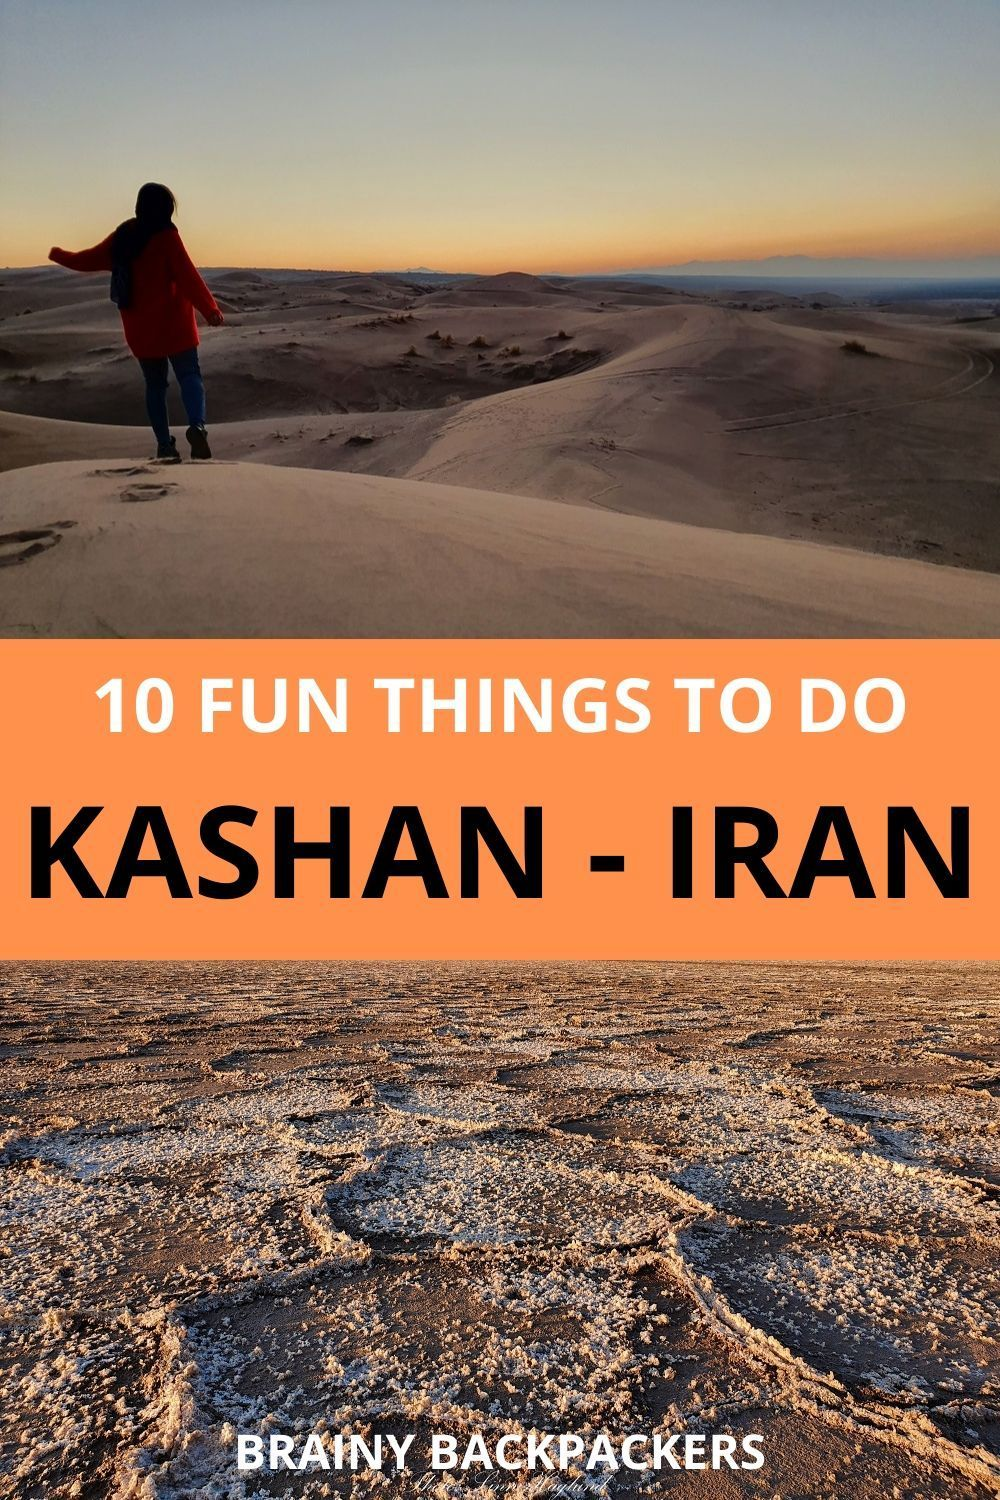 Are you planning a trip to Iran? Kashan should be on your Iran Itinerary for sure! Here are 10 fun things to do in and around Kashan. #middleeasttravel #irantraveltips #kashantravel #visitiran #touristiniran #traveliran #kashantraveltips #traveltips #offthebeatenpath #responsibletourism #brainybackpackers #travel #asia #westernasia